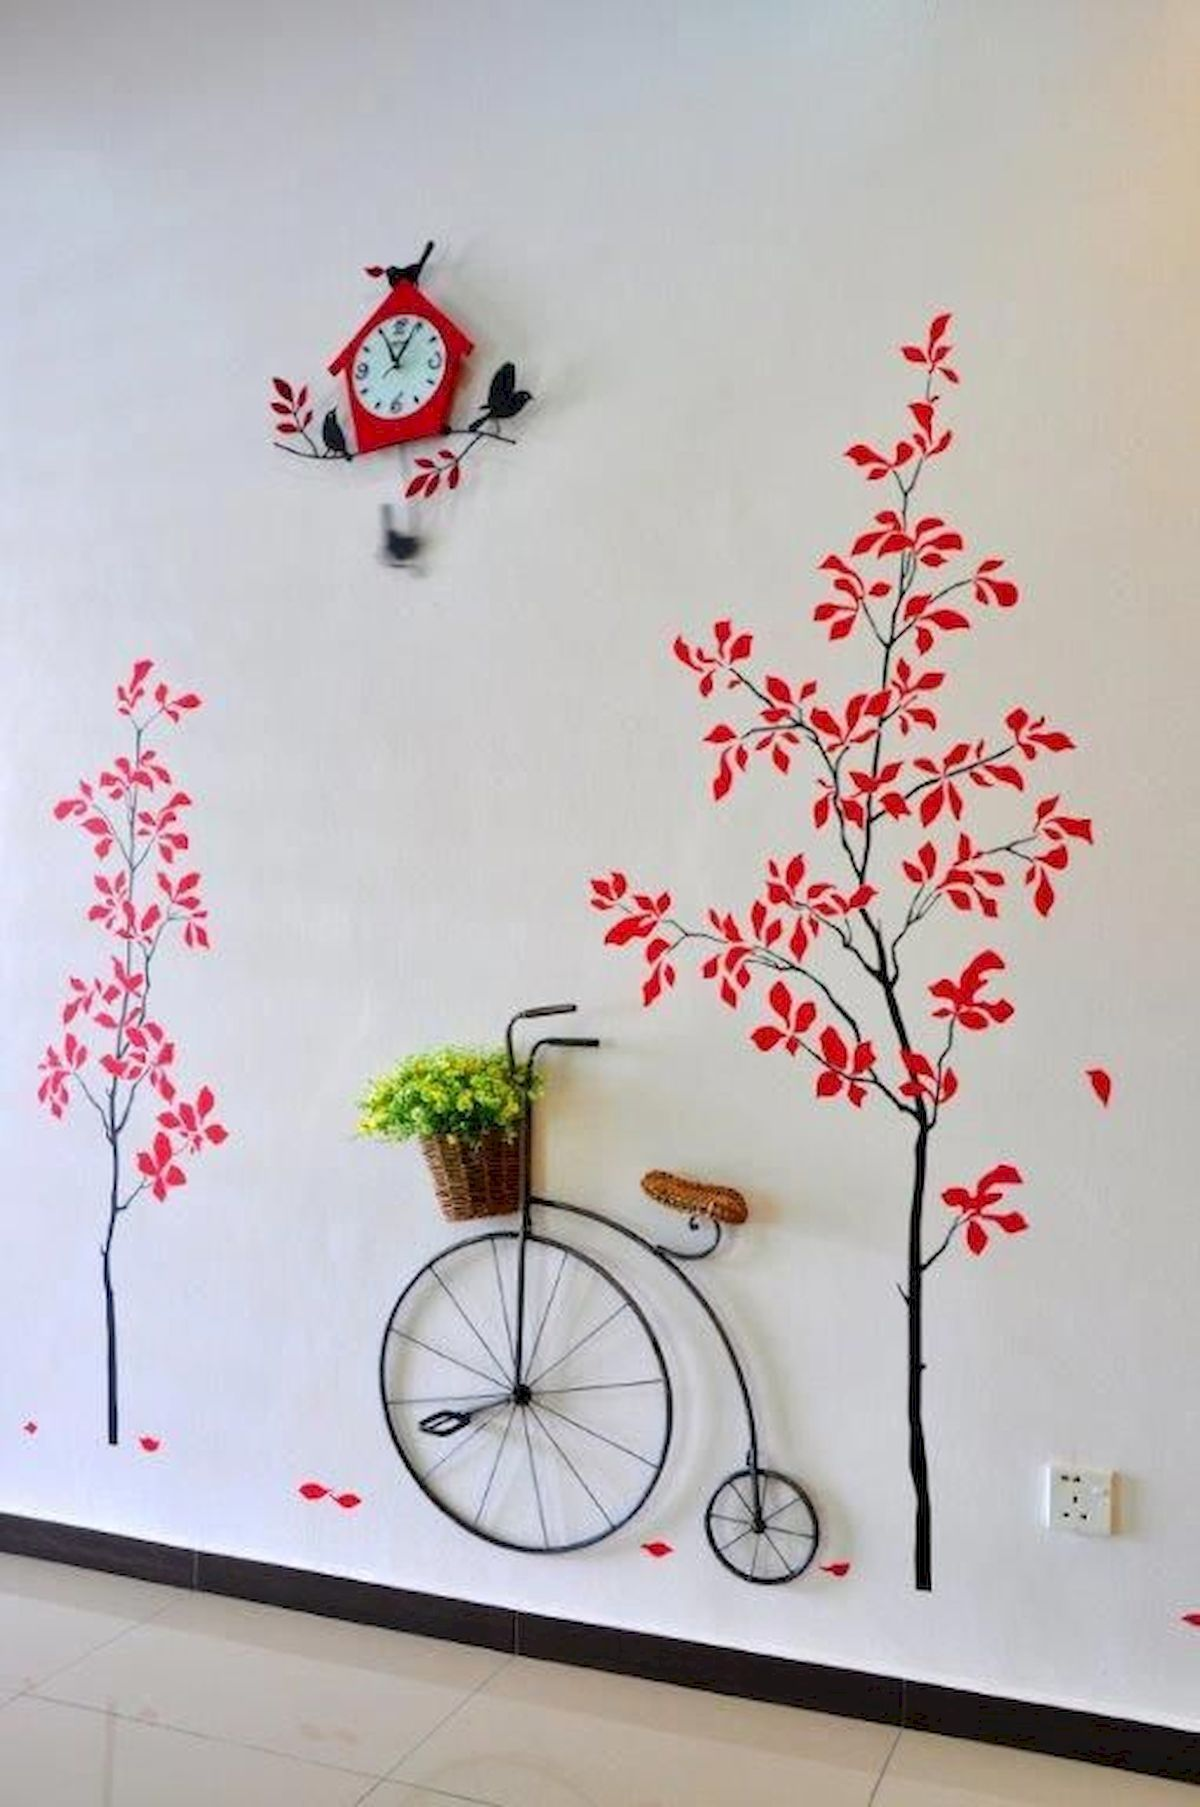 Awesome 80 Awesome Spring Garden Ideas For Front Yard And Backyard Https Coachdecor Com 80 Awesome Spring Diy Wall Painting Wall Painting Decor Wall Painting